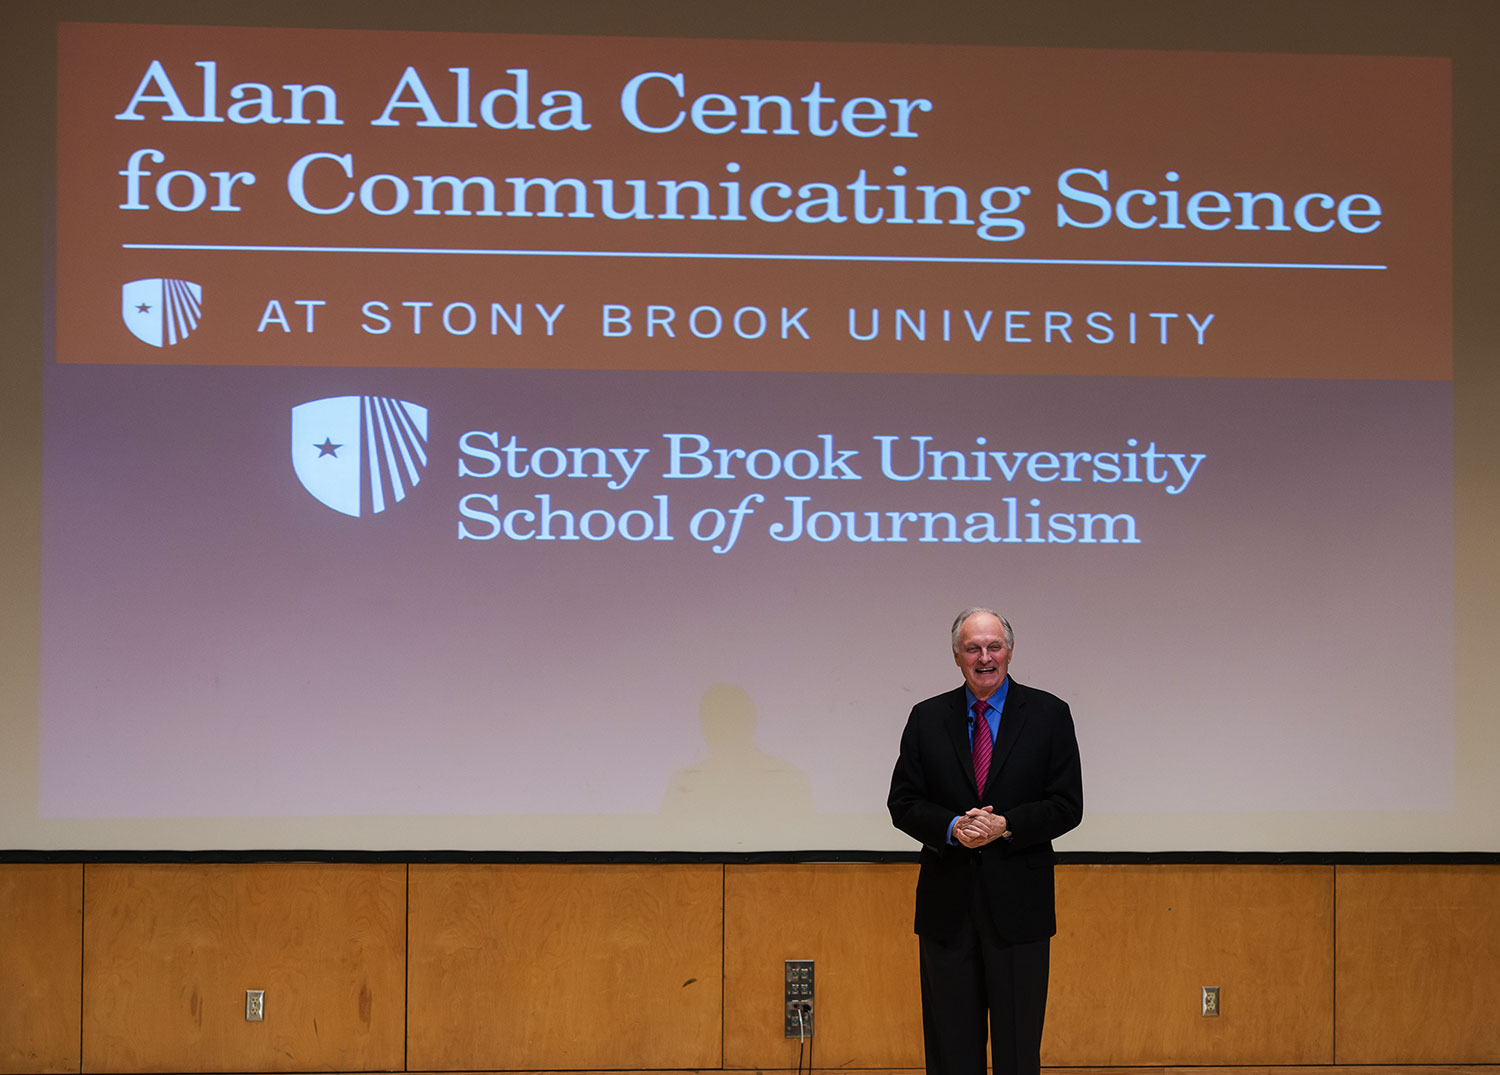 Alan Alda with SBU Alda Center logo